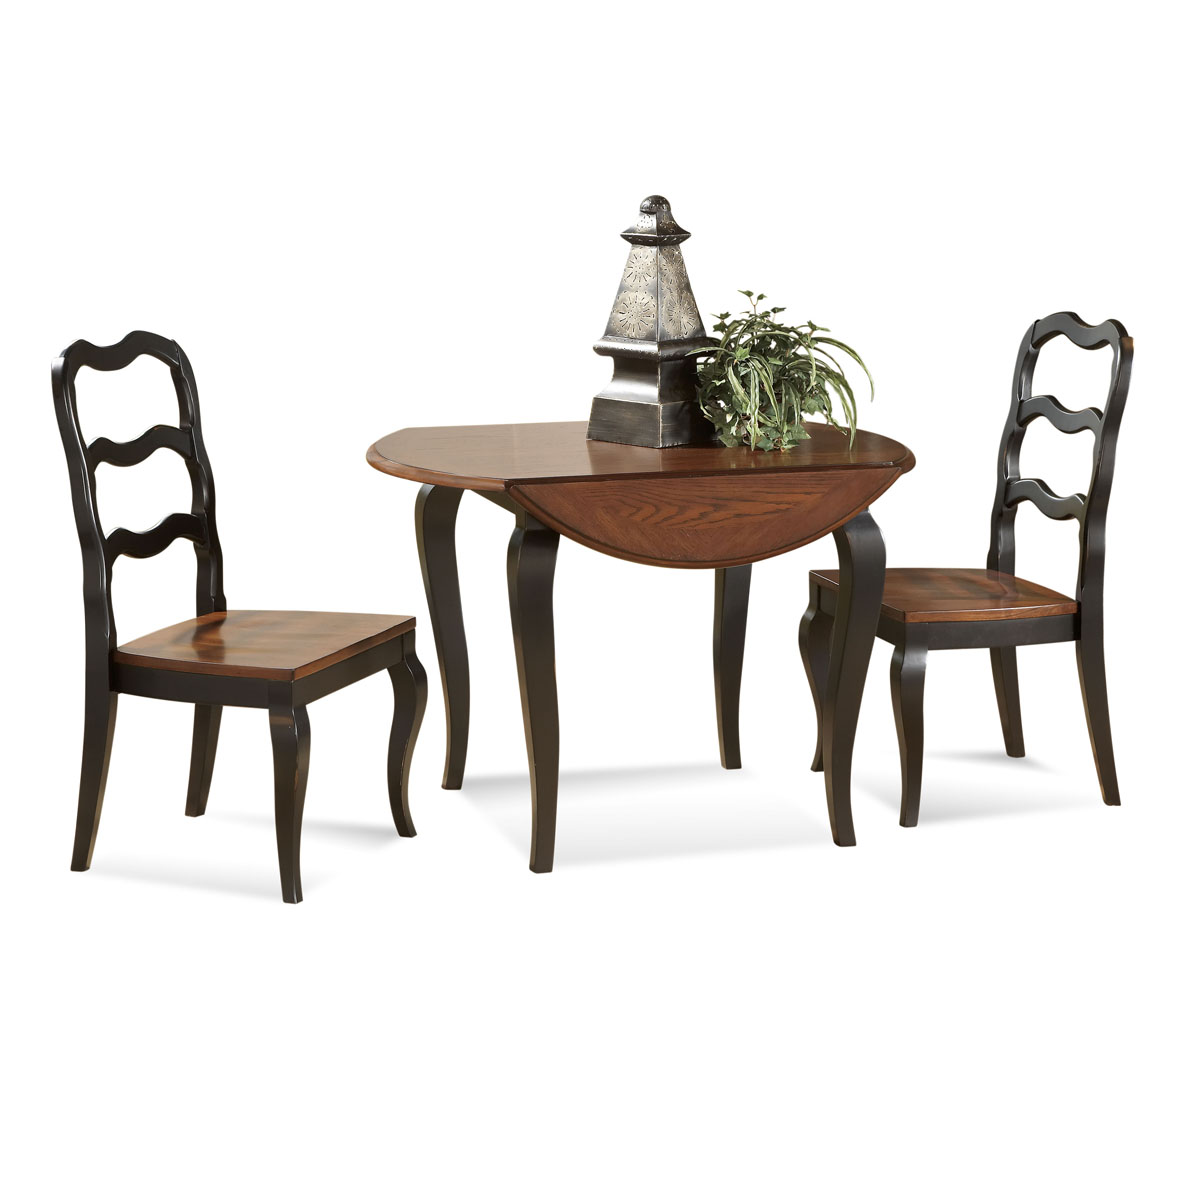 Drop Leaf Dining Table In Clic Style Two Chairs With Wood Finish Seating